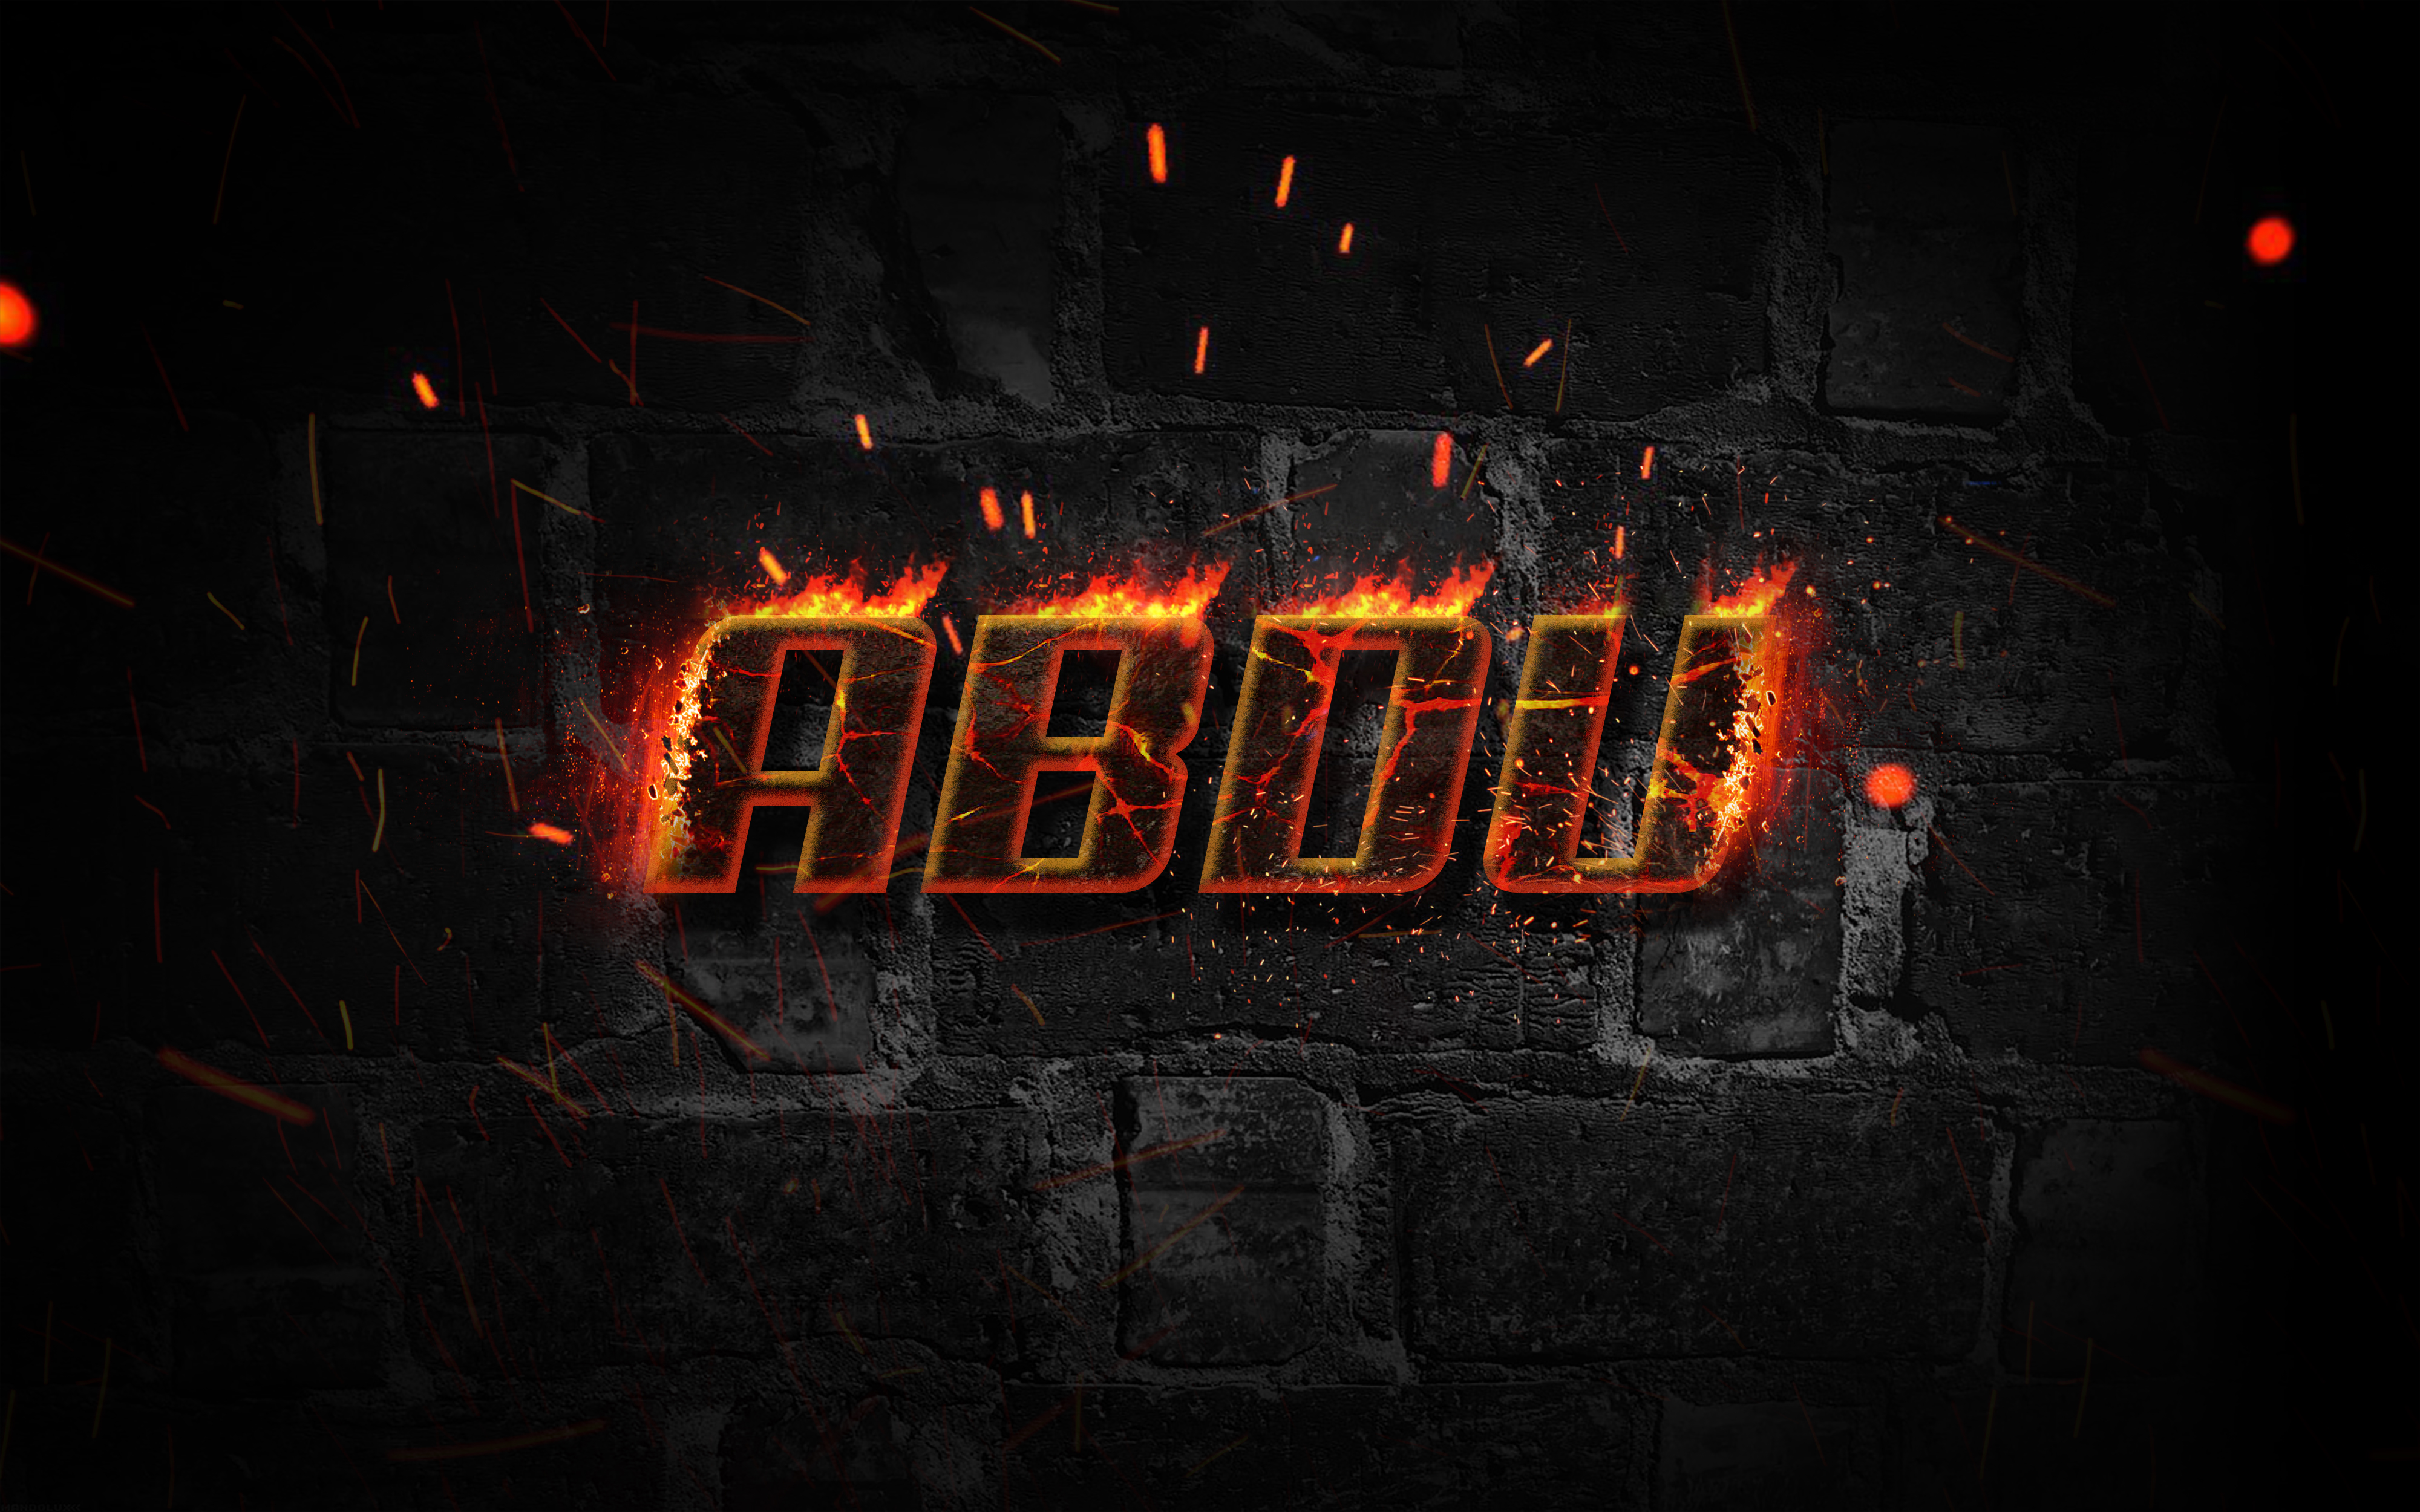 Photoshop tutorial fire text effect simple easy by abduboxmedia on photoshop tutorial fire text effect simple easy by abduboxmedia baditri Images